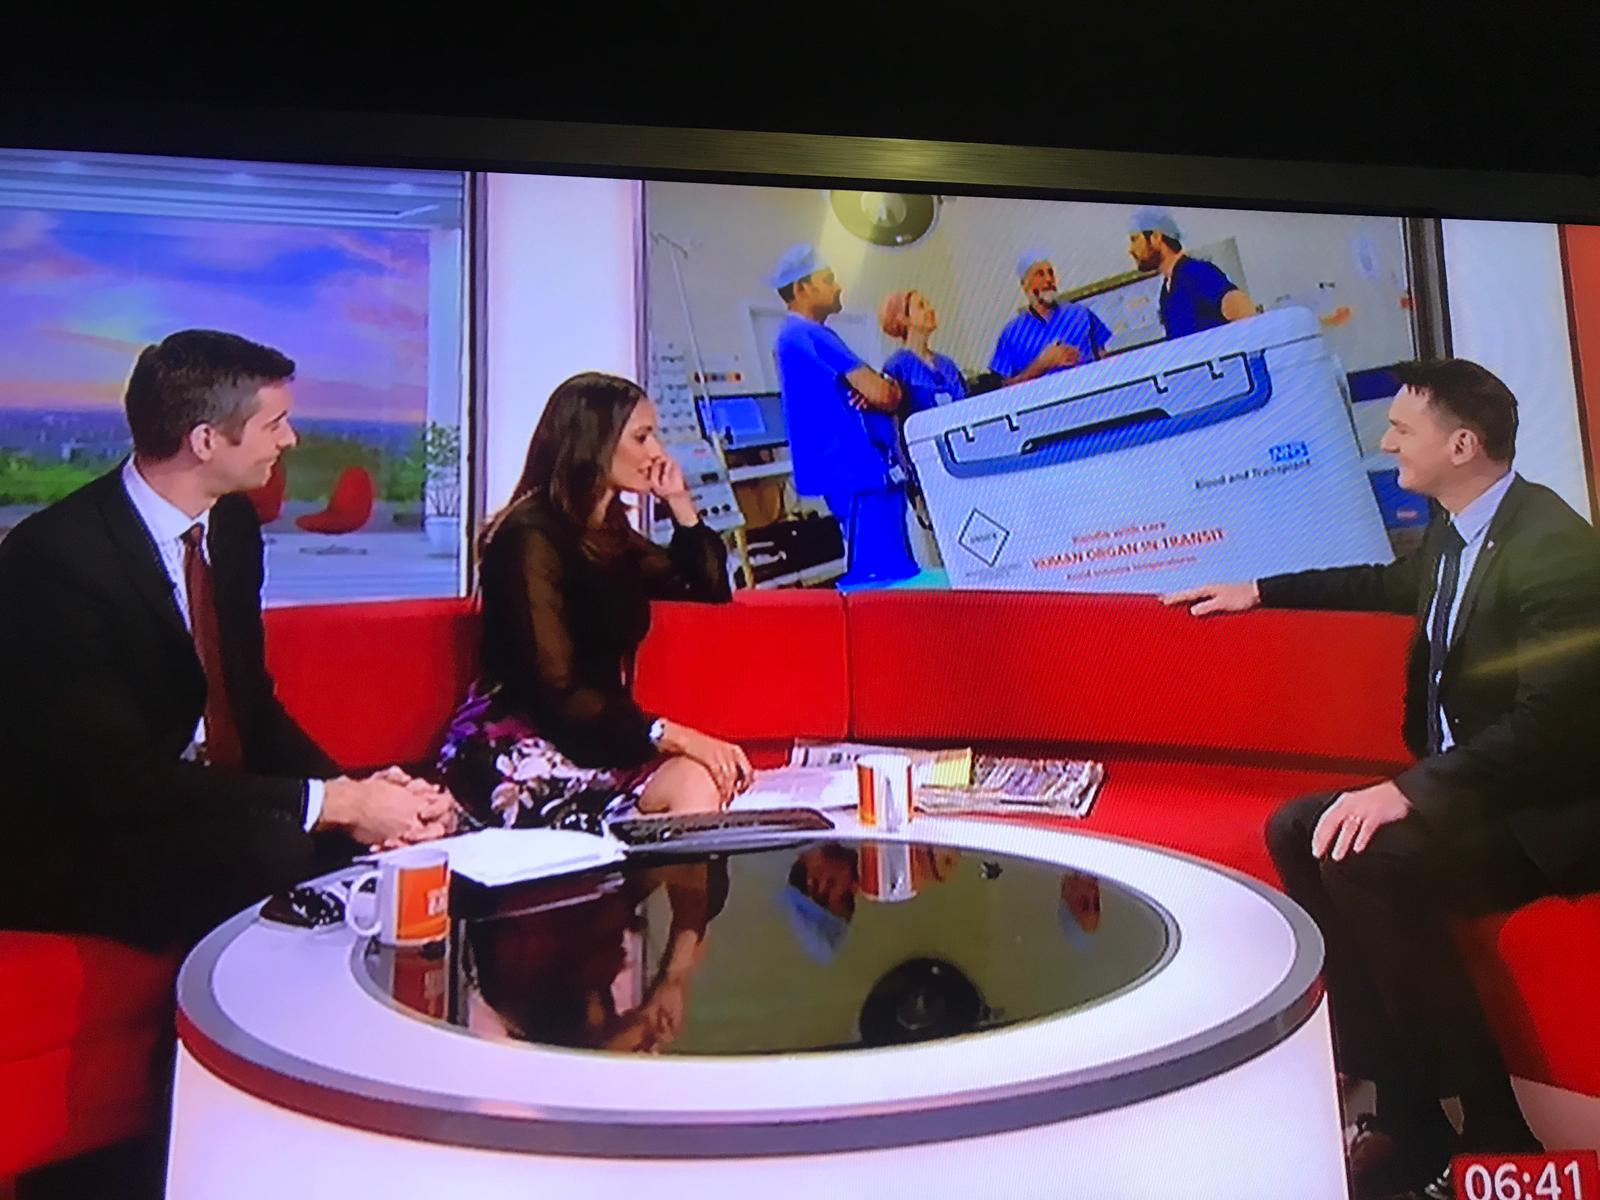 Anthony is interviewed on TV by two presenters